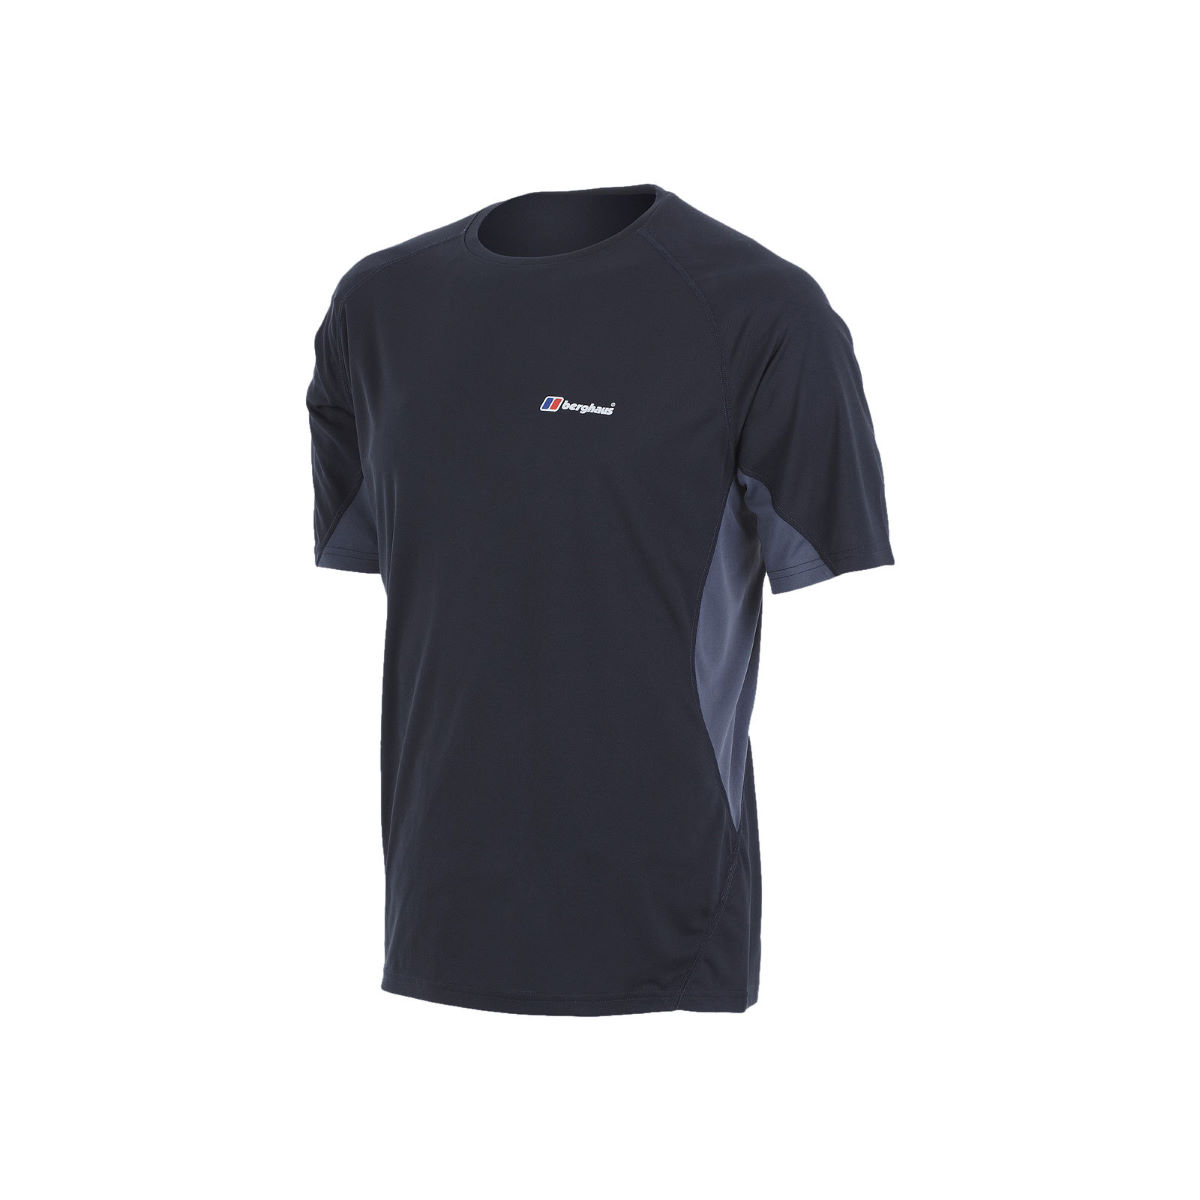 Maillot Berghaus Tech (col rond, manches courtes) - S Black / Grey